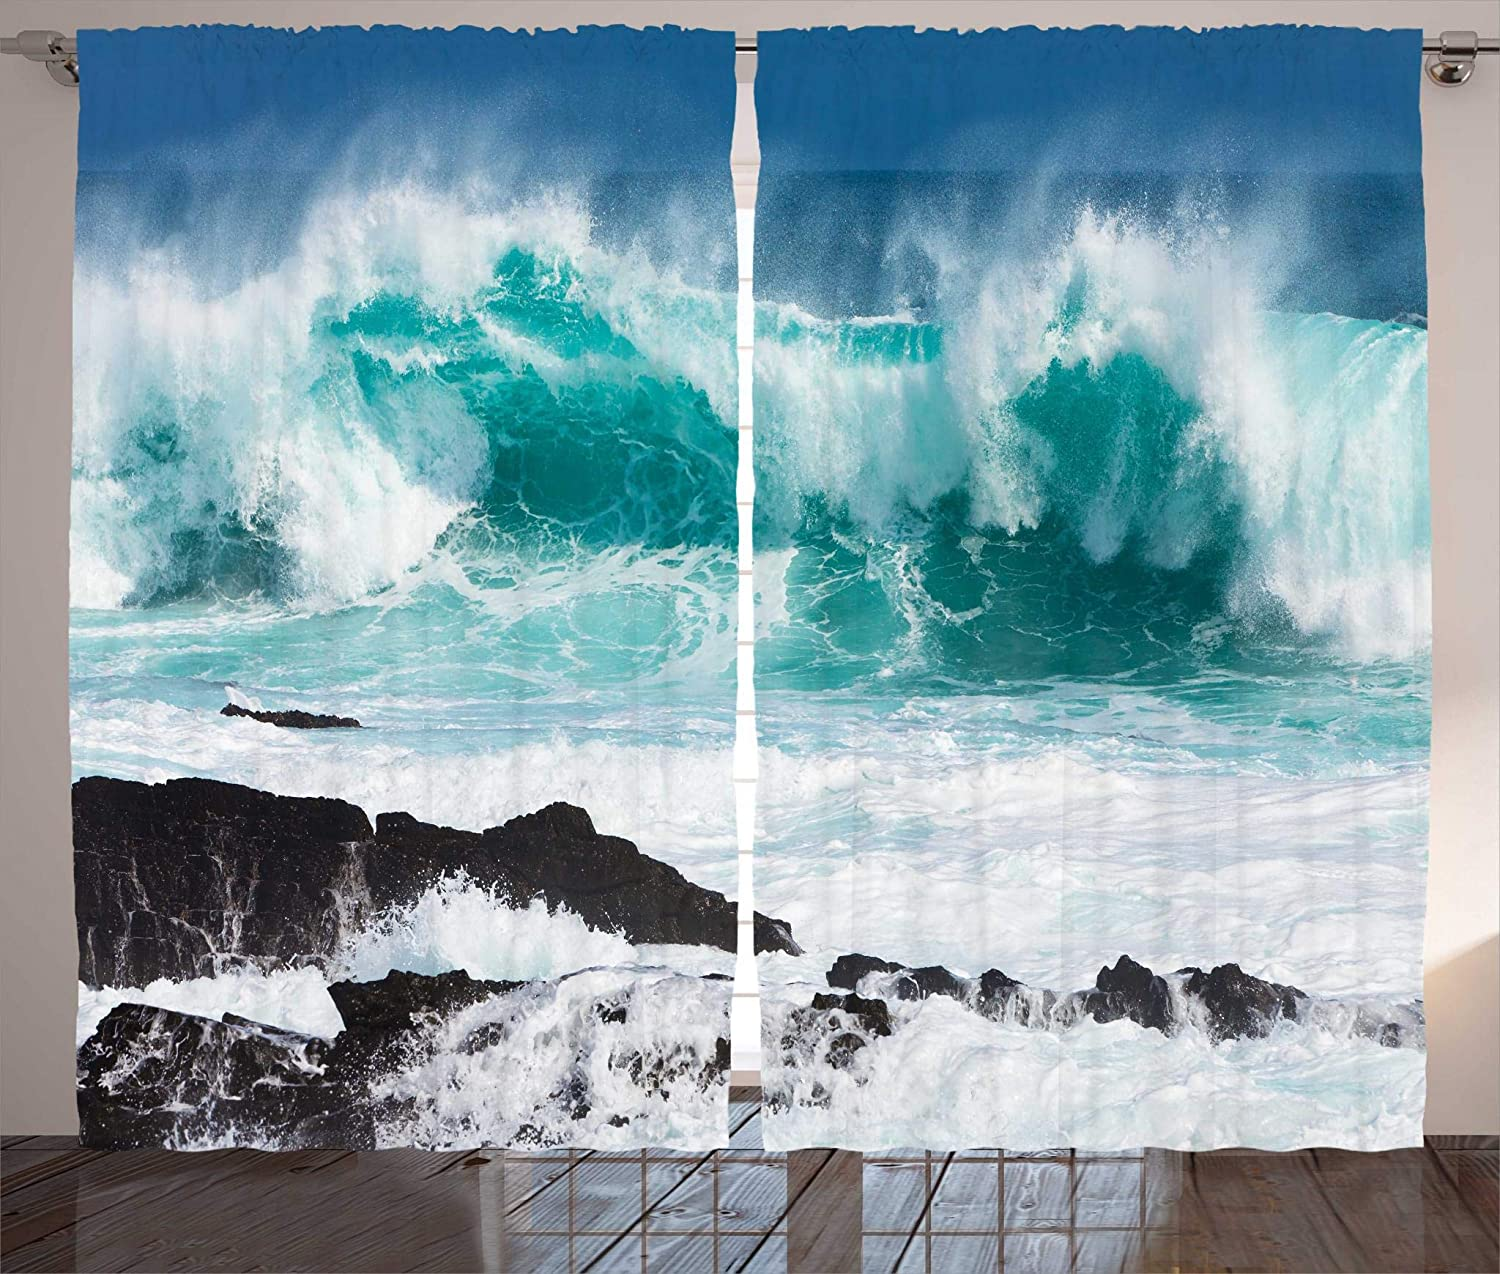 Ambesonne Modern Decor Curtains, Majestic Rolling Wave Slamming on Rocks of the Sea Coastline Ocean Scene, Living Room Bedroom Window Drapes 2 Panel Set, 108W X 84L Inches, Turquoise White